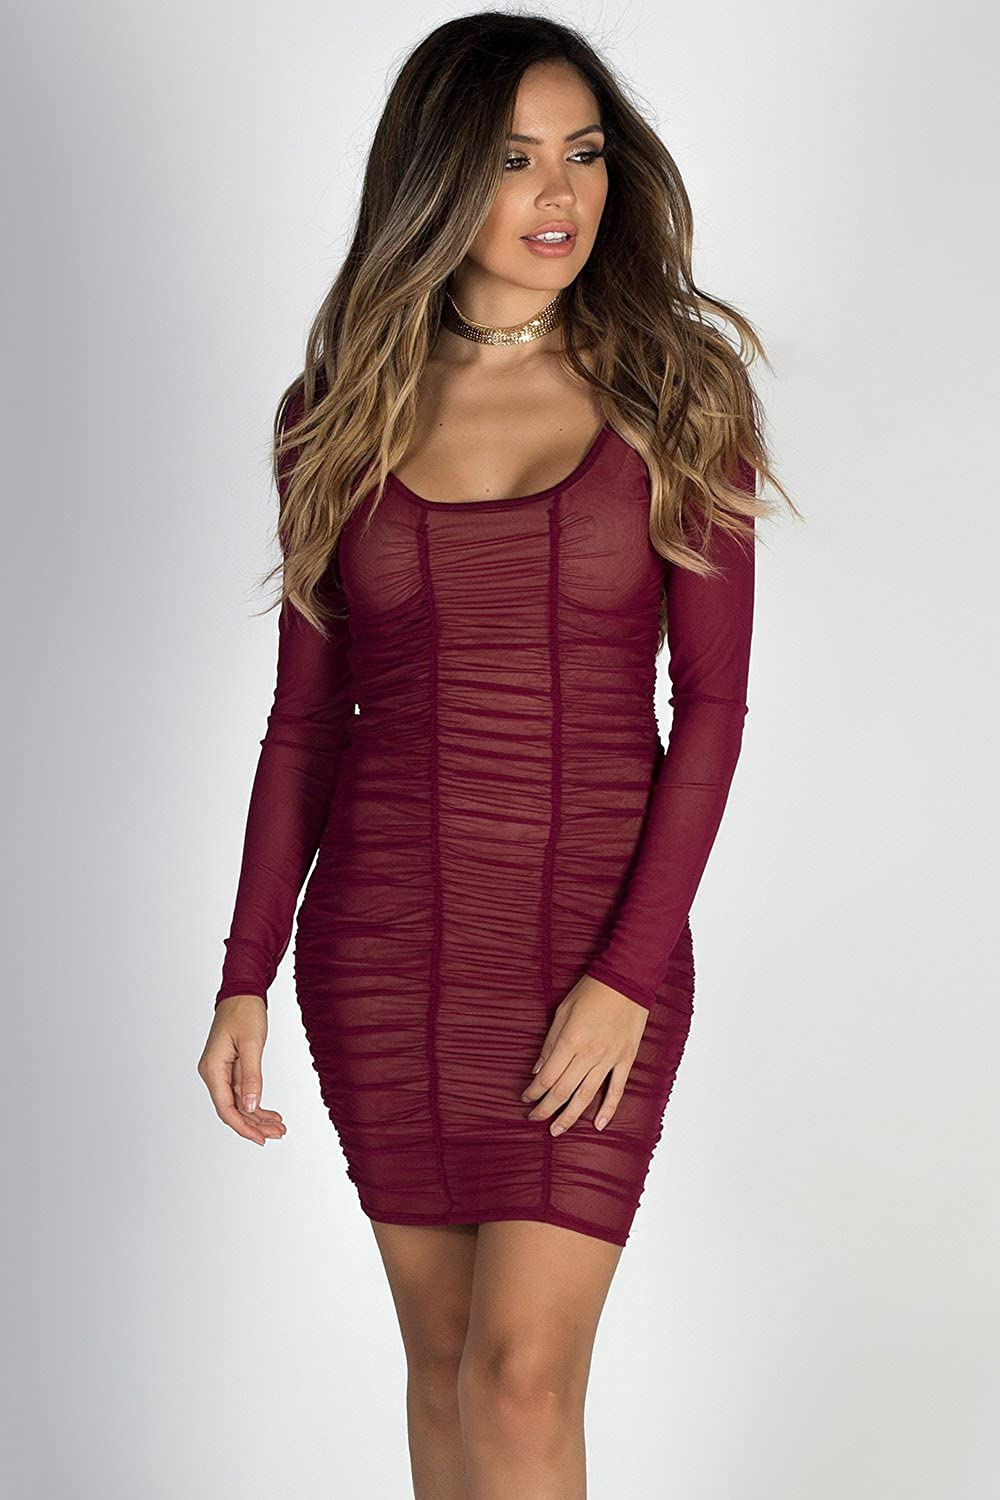 68819a1cd4a0 Babe Society Women's Burgundy Ruched Long Sleeve Mesh Dress Large at Amazon  Women's Clothing store: